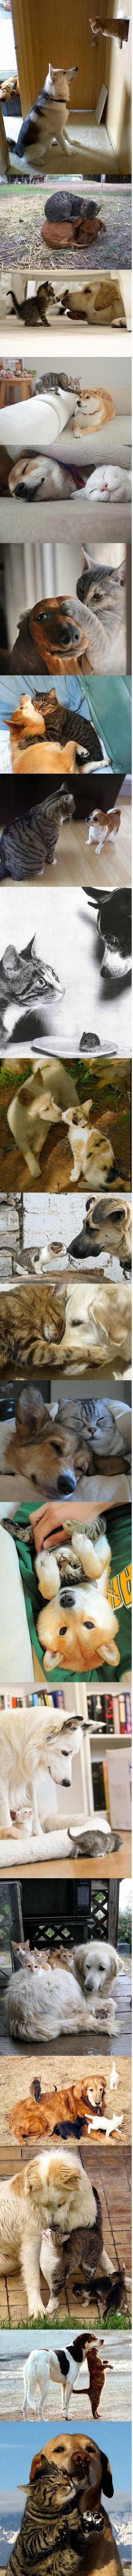 Cat and dog friendships